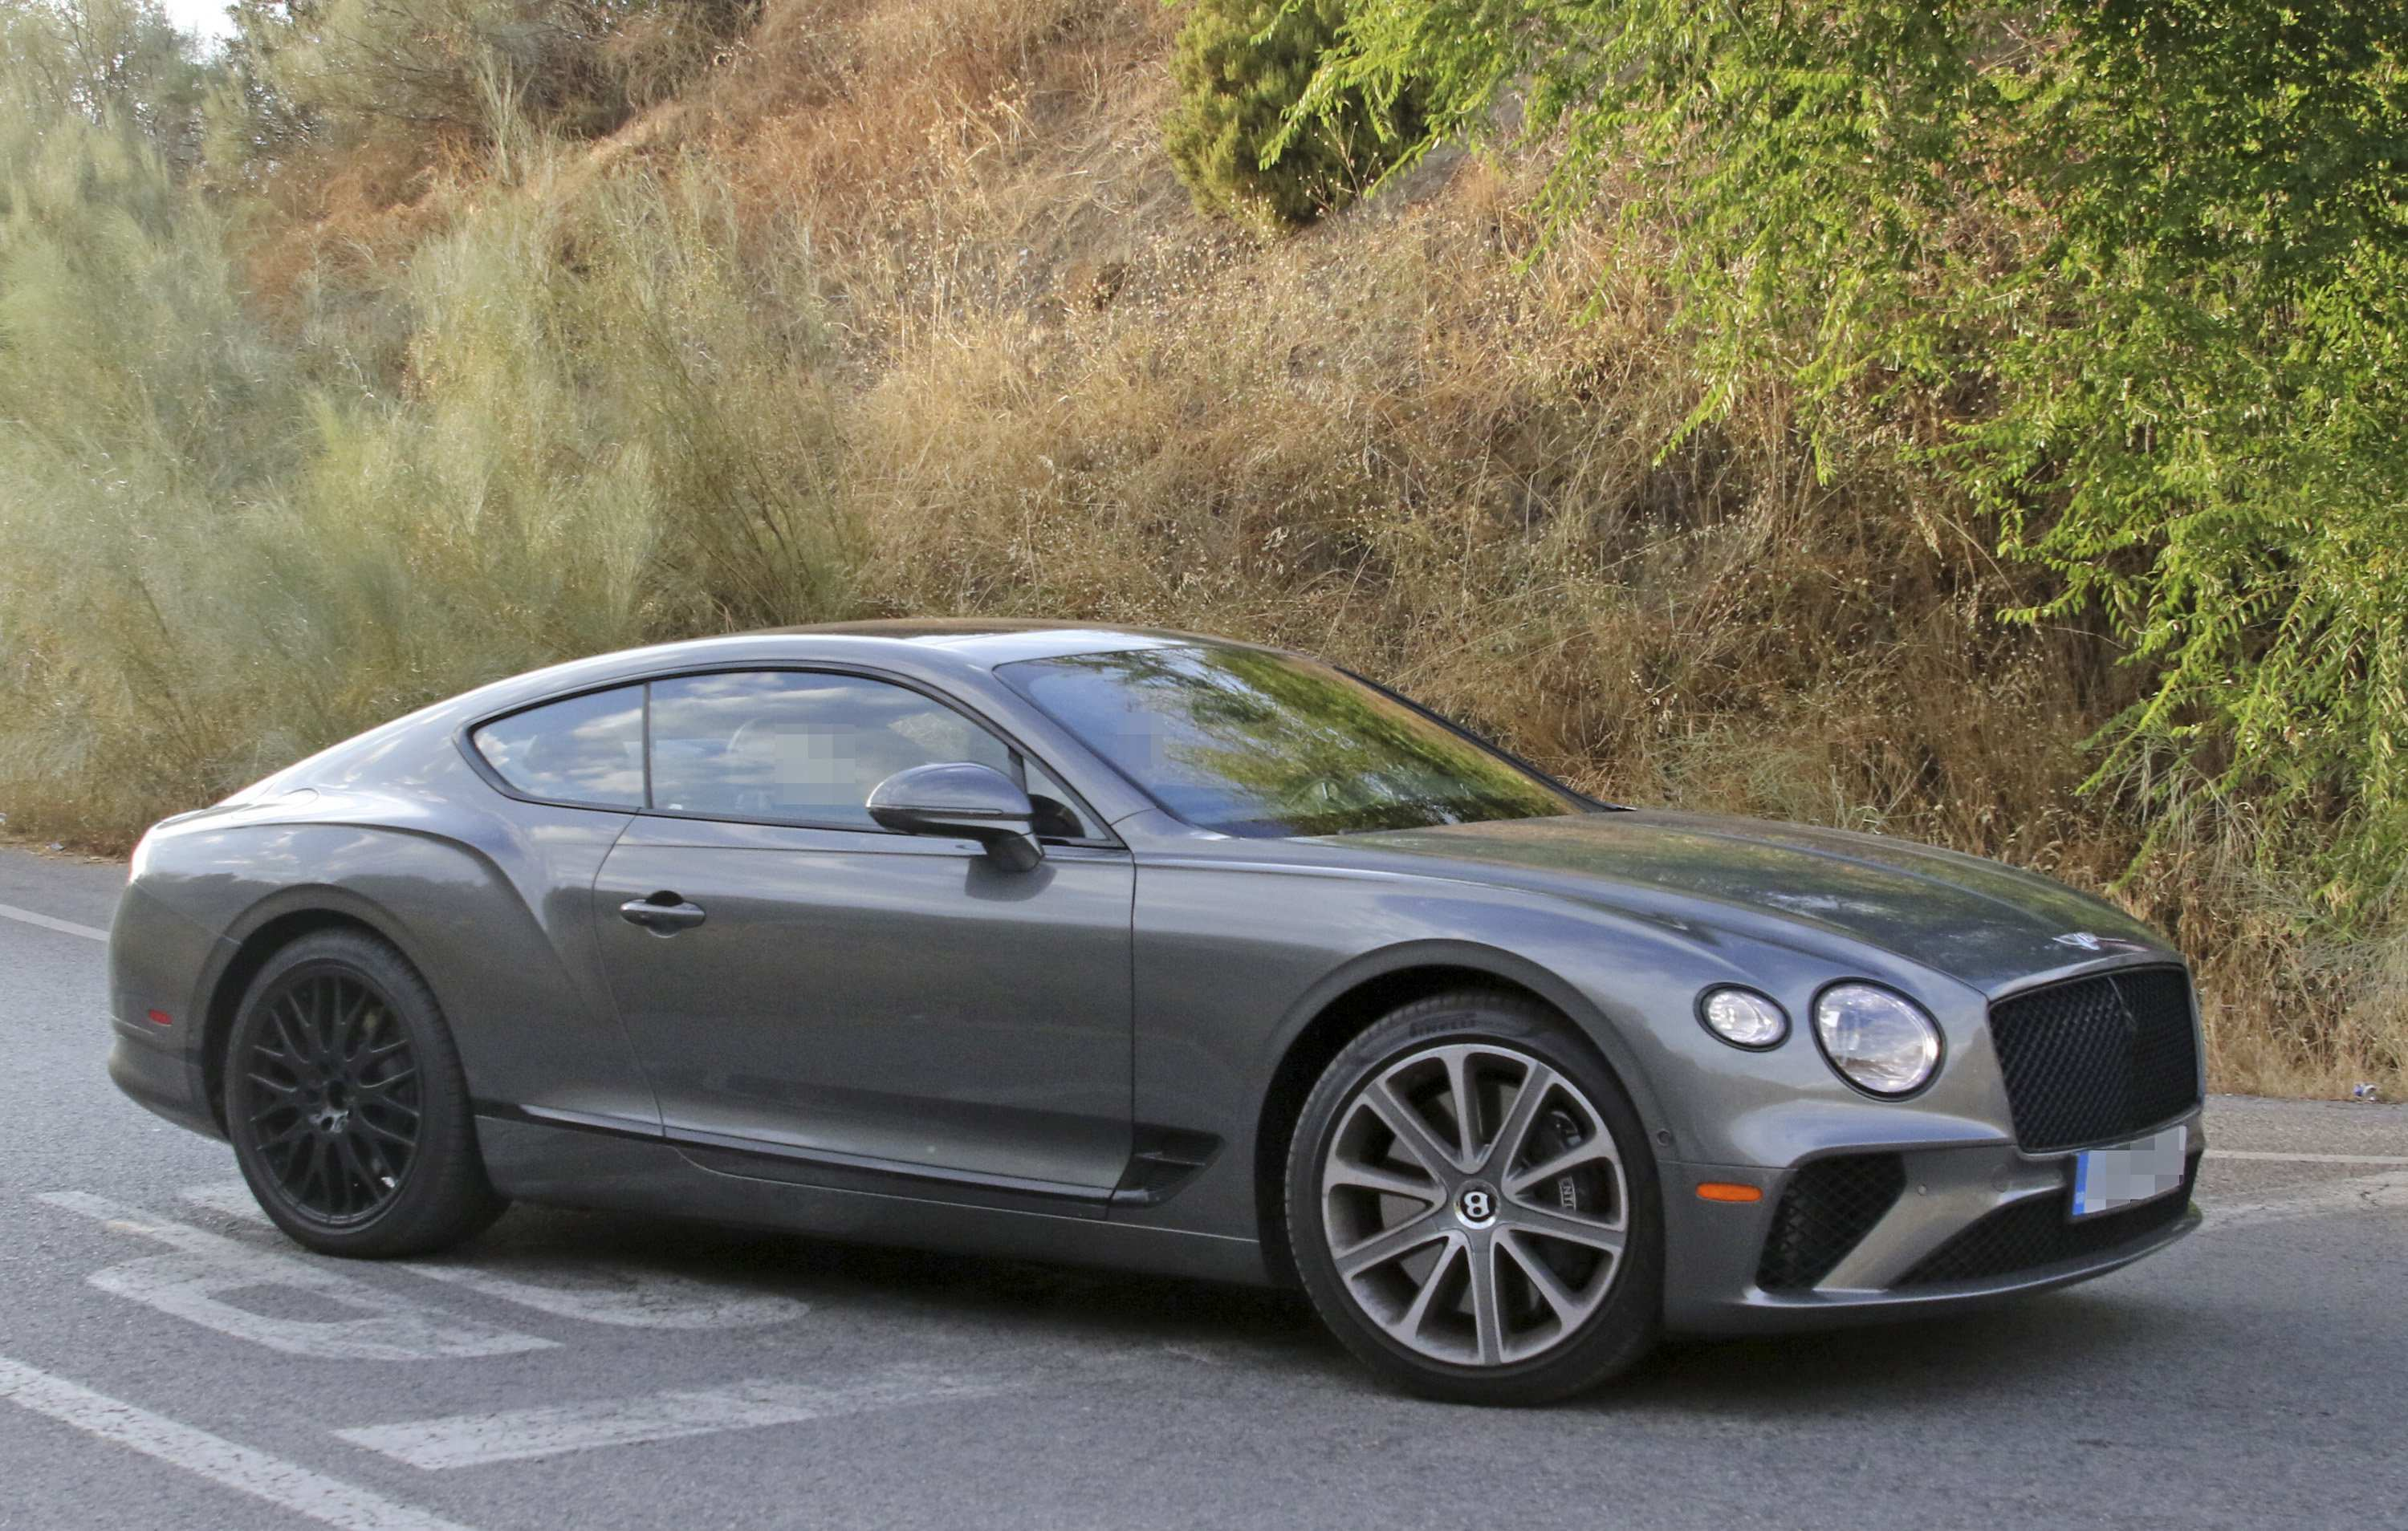 92 Gallery of 2019 Bentley Supersport Pricing for 2019 Bentley Supersport